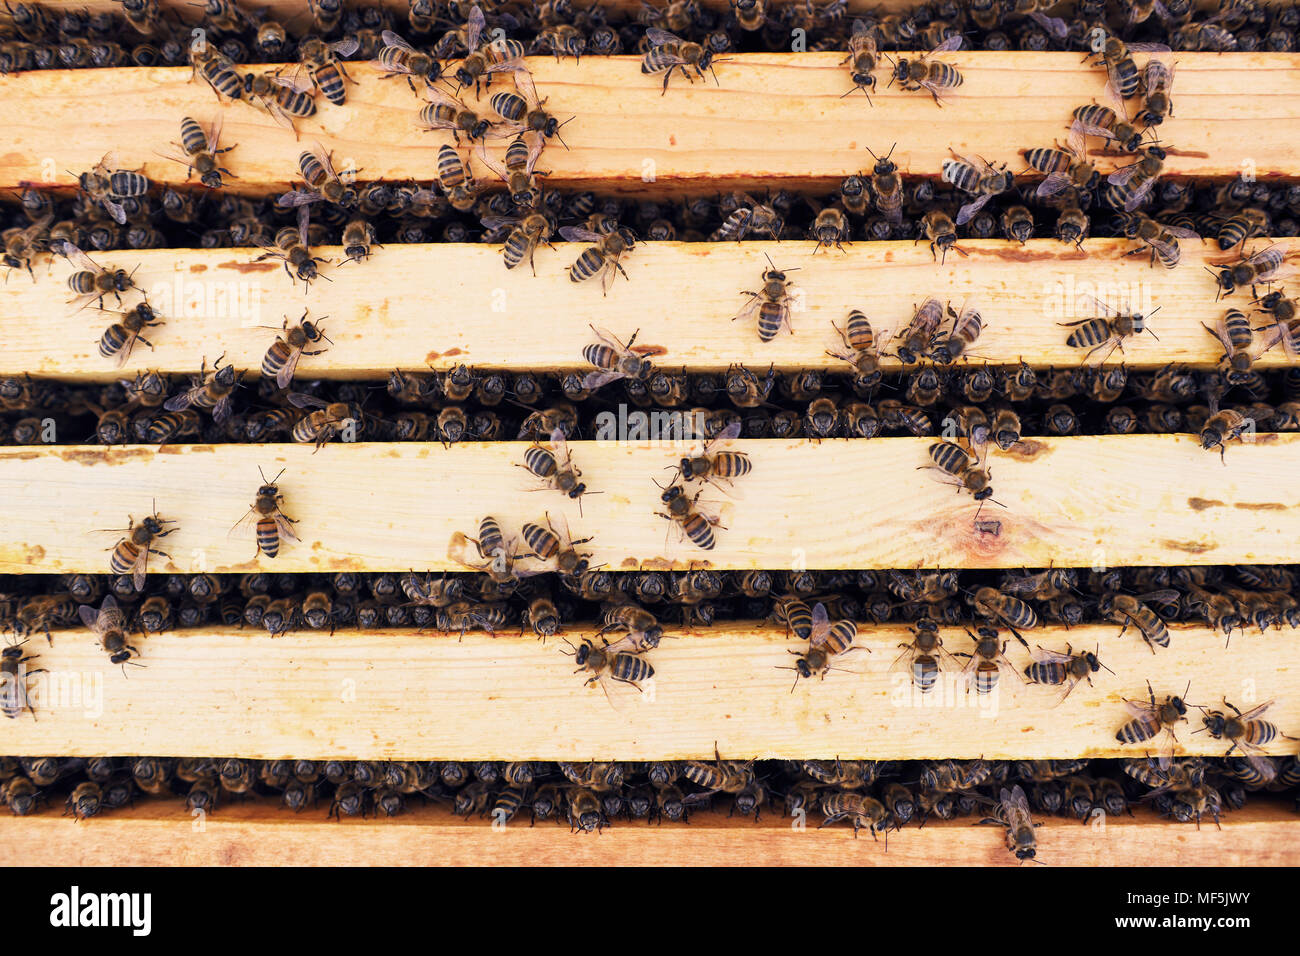 Honey Bees in Apiary - Stock Image